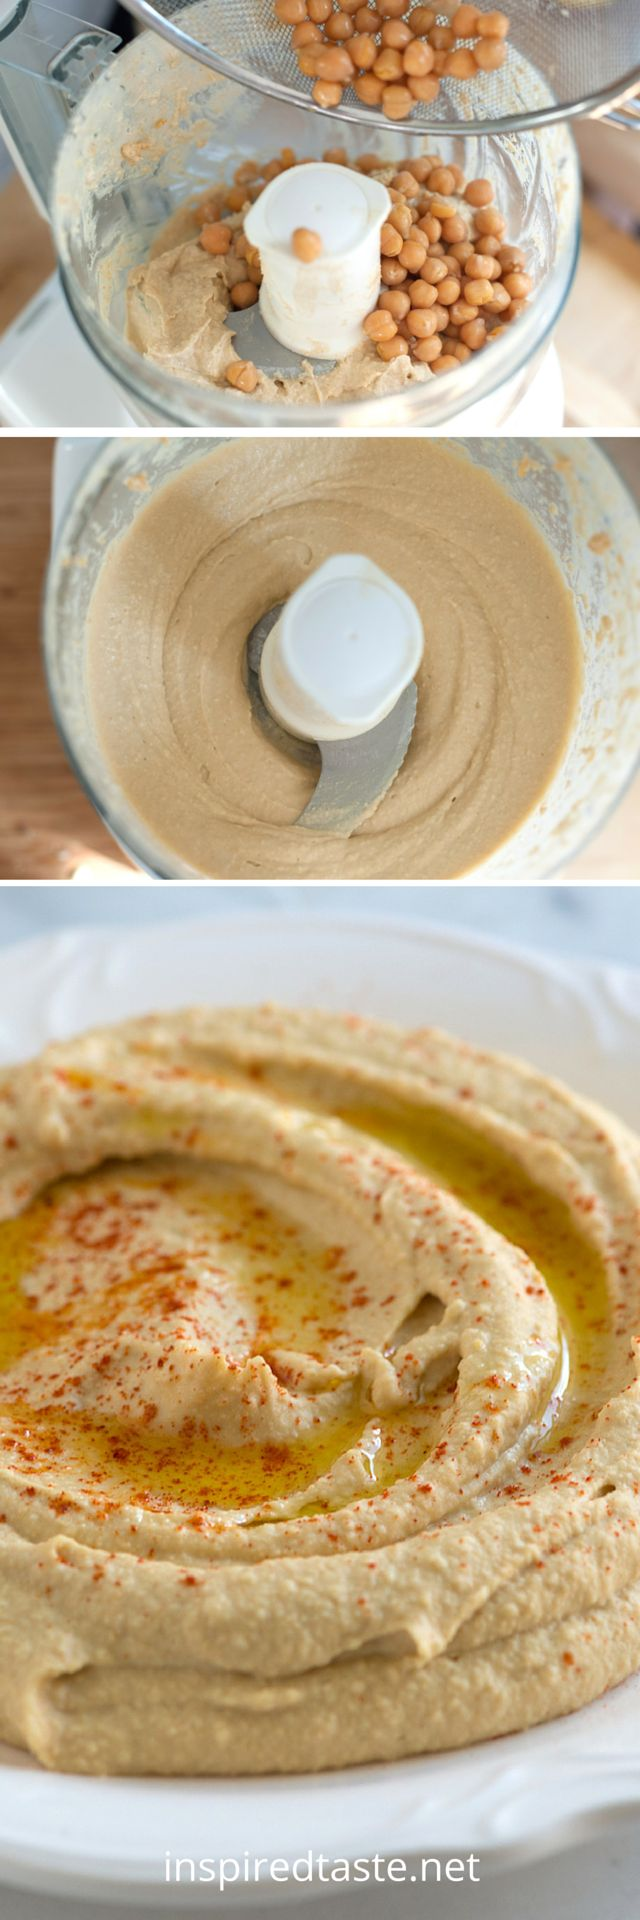 Better than store-bought hummus recipe. See the full recipe with video on inspiredtaste.net